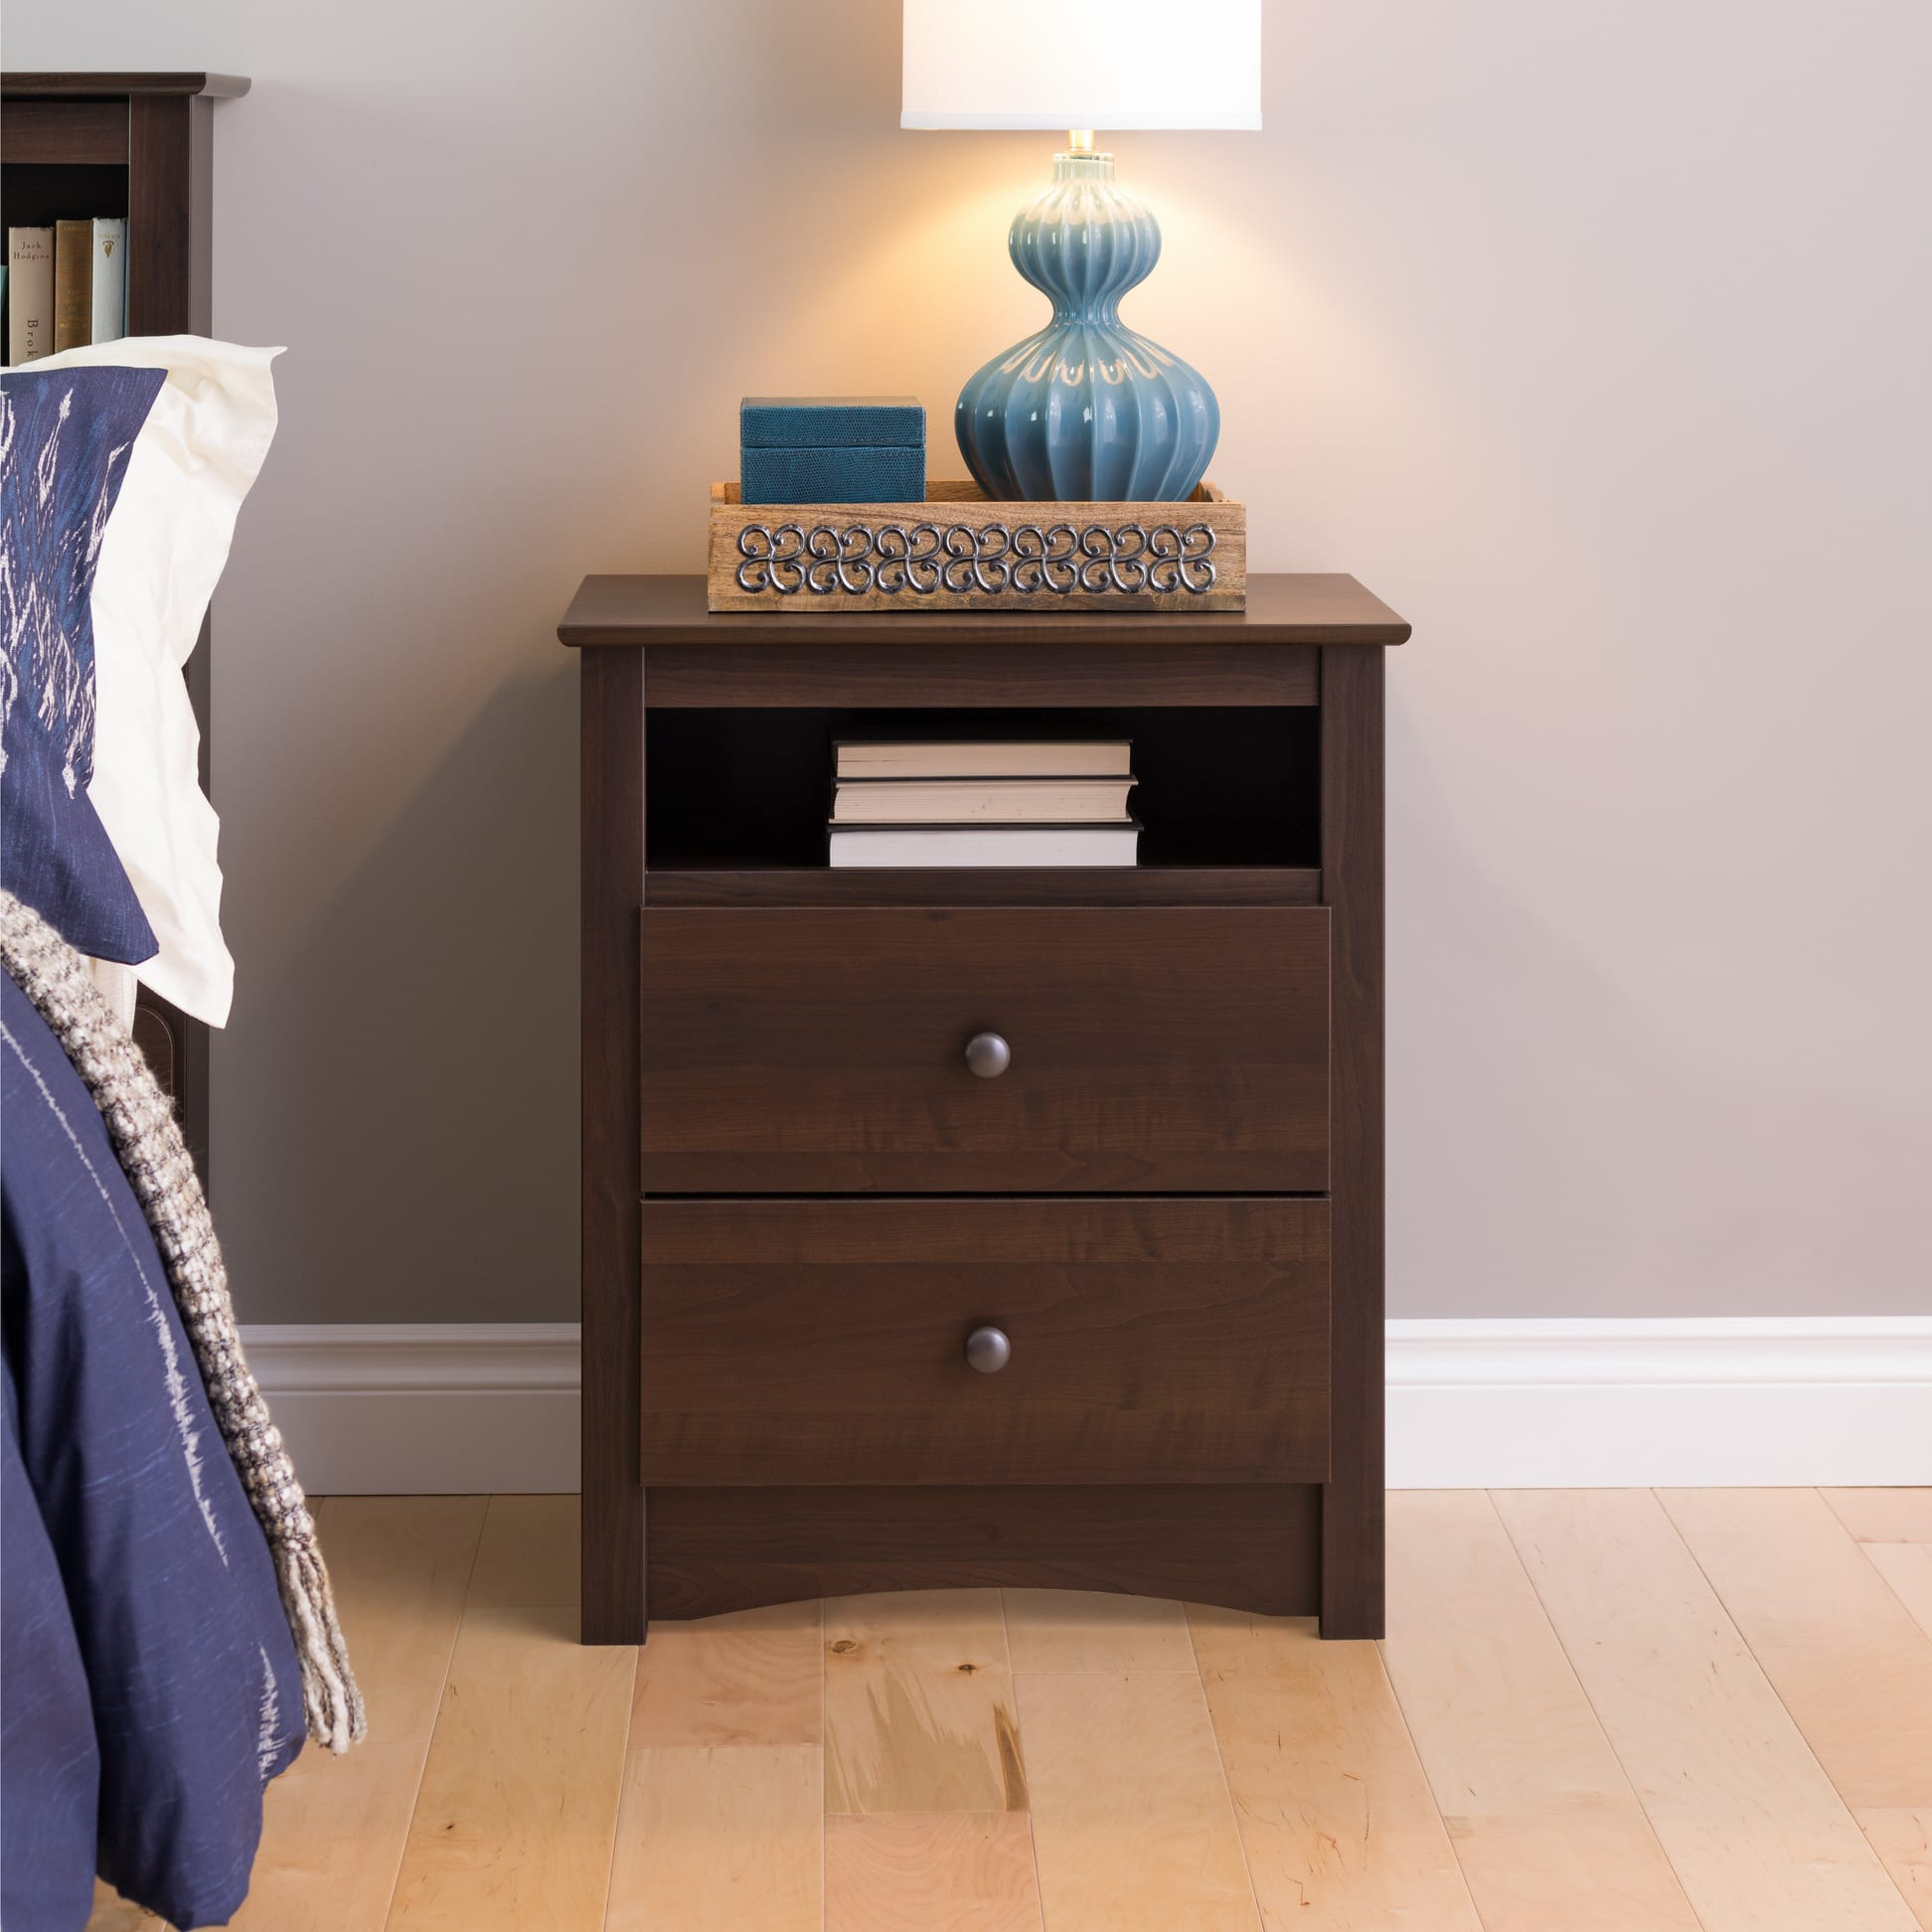 51a299fb4aa Fremont 2 Drawer Tall Nightstand with Open Cubbie by Prepac (Prepac  Manufacturing). Loading zoom.